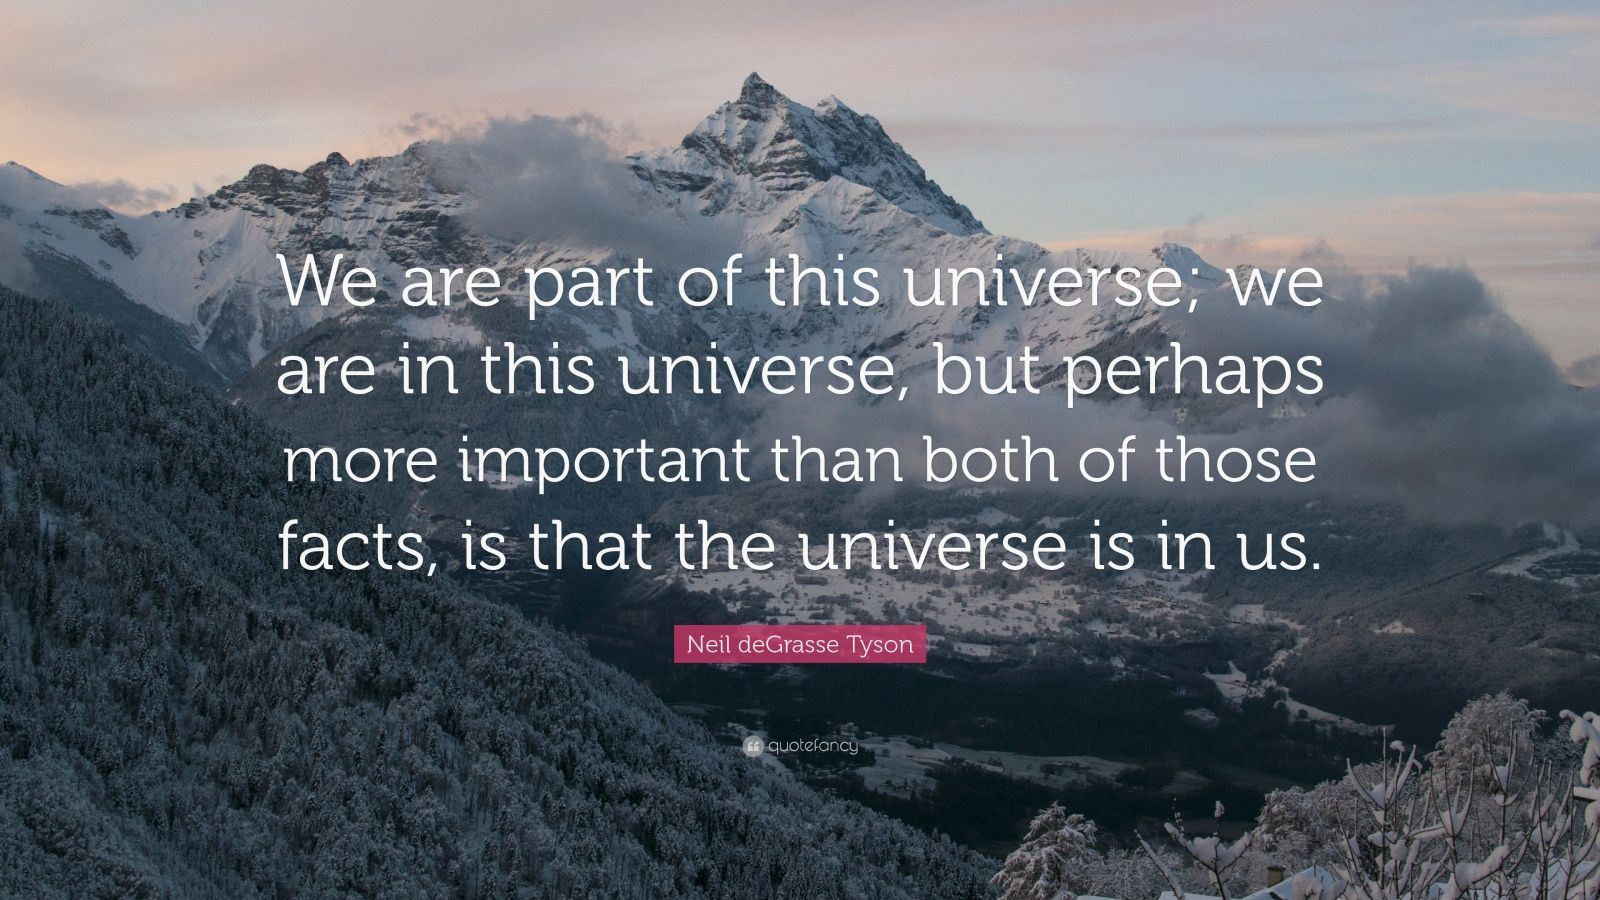 """Neil deGrasse Tyson Quote: """"We are part of this universe; we are in this universe, but perhaps more important than both of those facts, is that the universe is in us."""""""